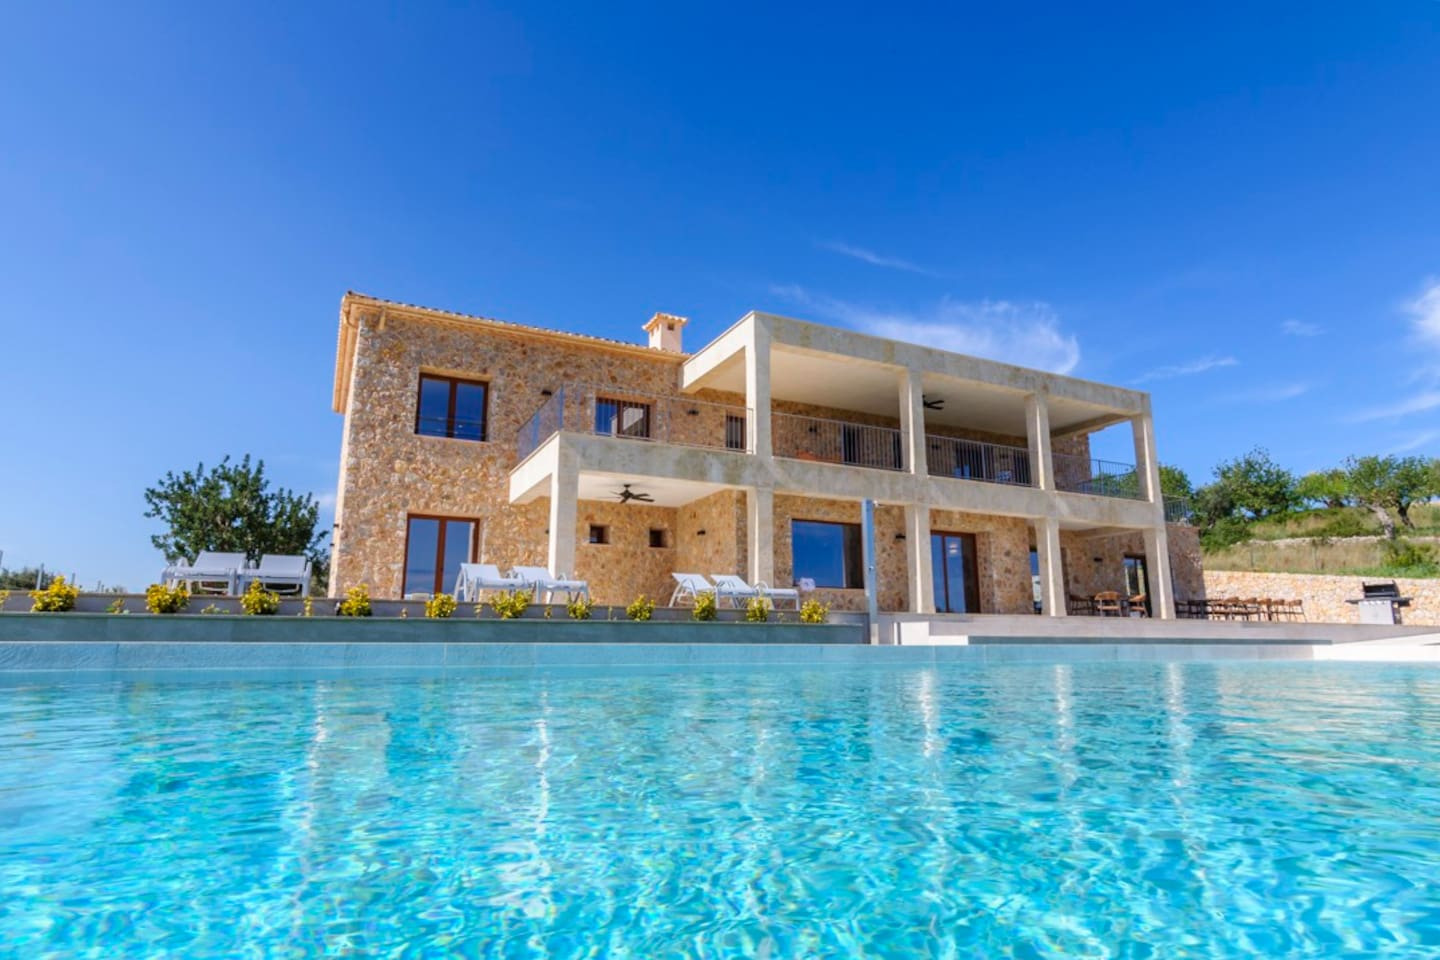 Main photo. House and swimming pool